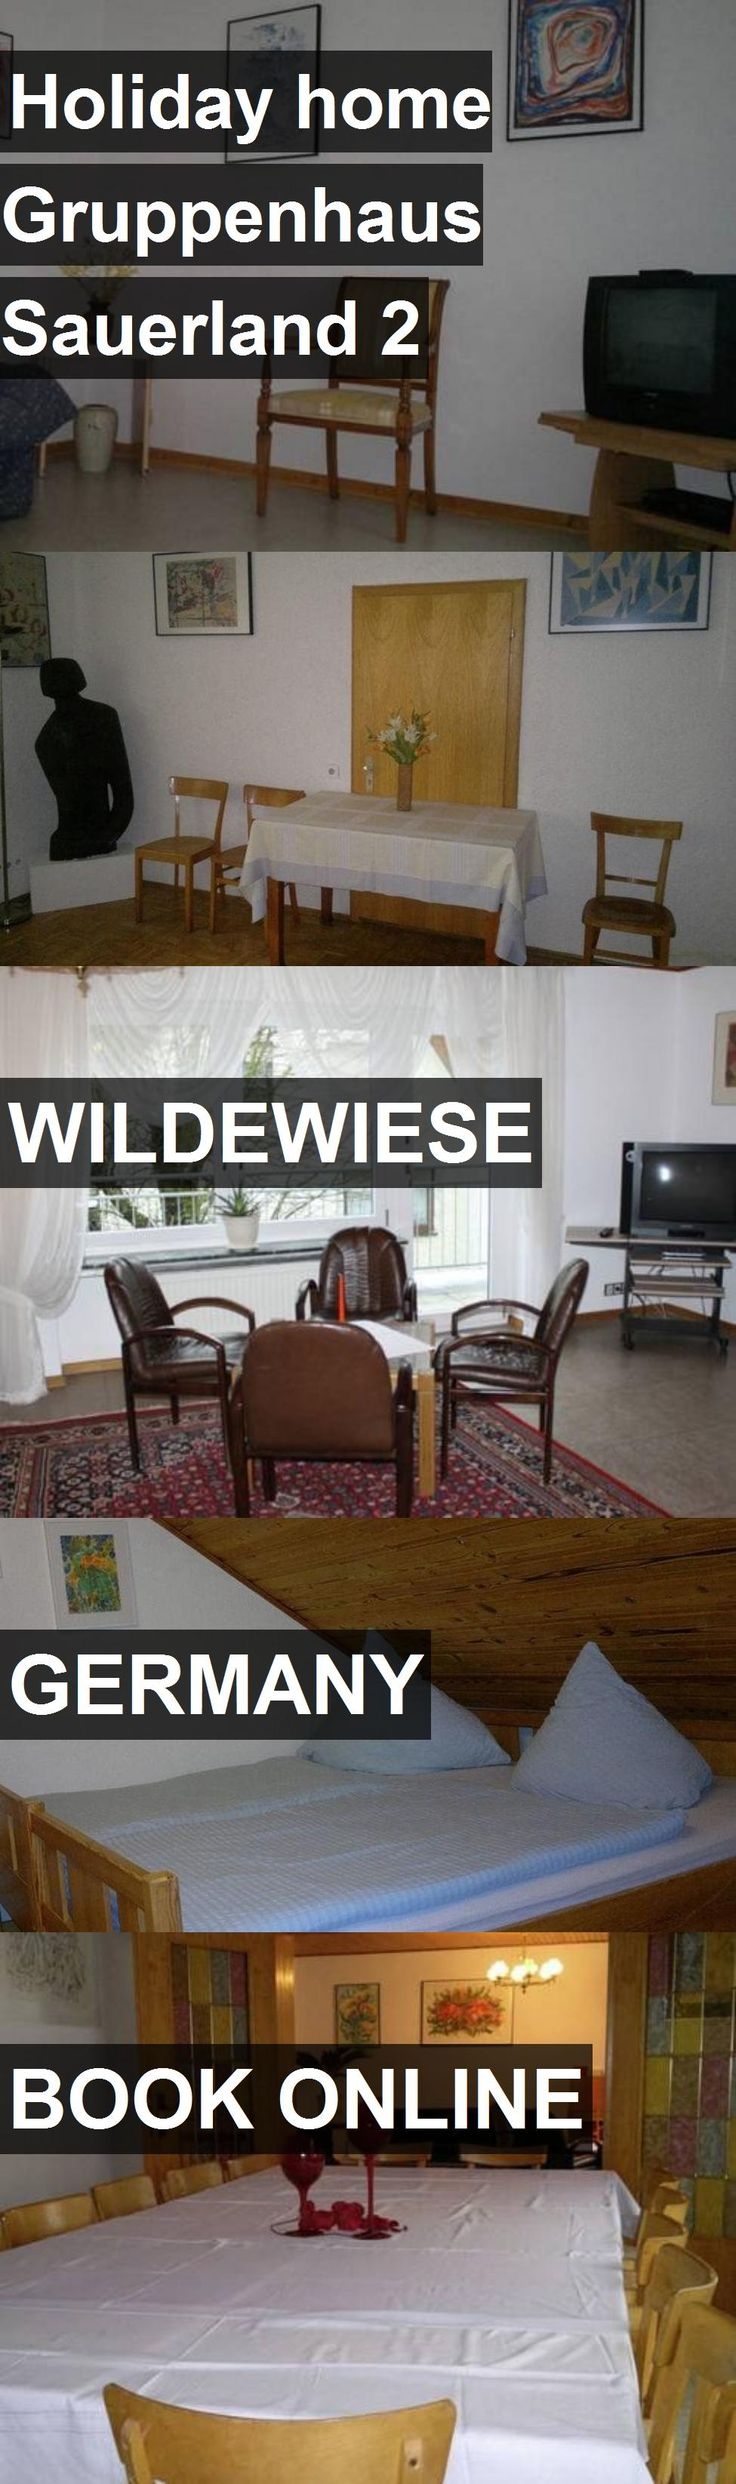 Hotel Holiday home Gruppenhaus Sauerland 2 in Wildewiese, Germany. For more information, photos, reviews and best prices please follow the link. #Germany #Wildewiese #HolidayhomeGruppenhausSauerland2 #hotel #travel #vacation